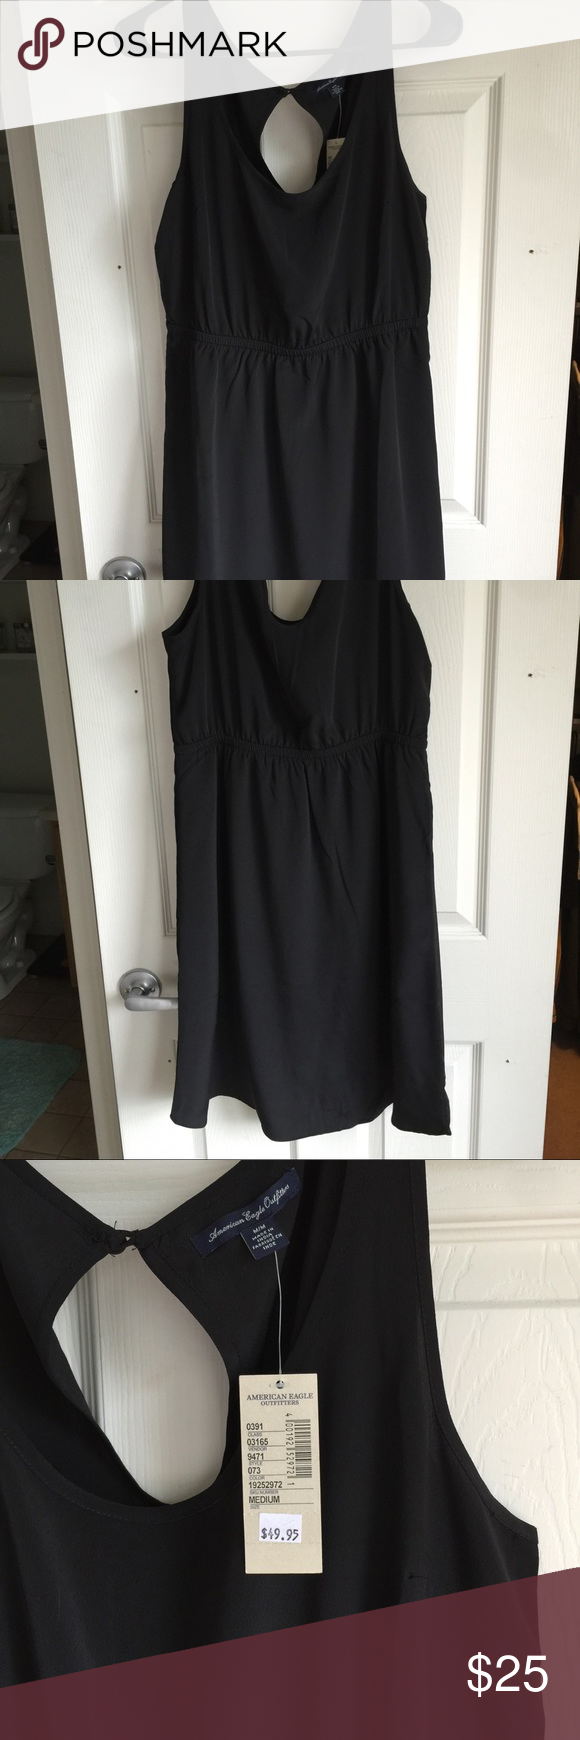 American Eagle HiLo dress Size Medium. Cute dress with Hi- Lo hem at bottom and cut out back. Never worn. NWT. Silk like material American Eagle Outfitters Dresses High Low